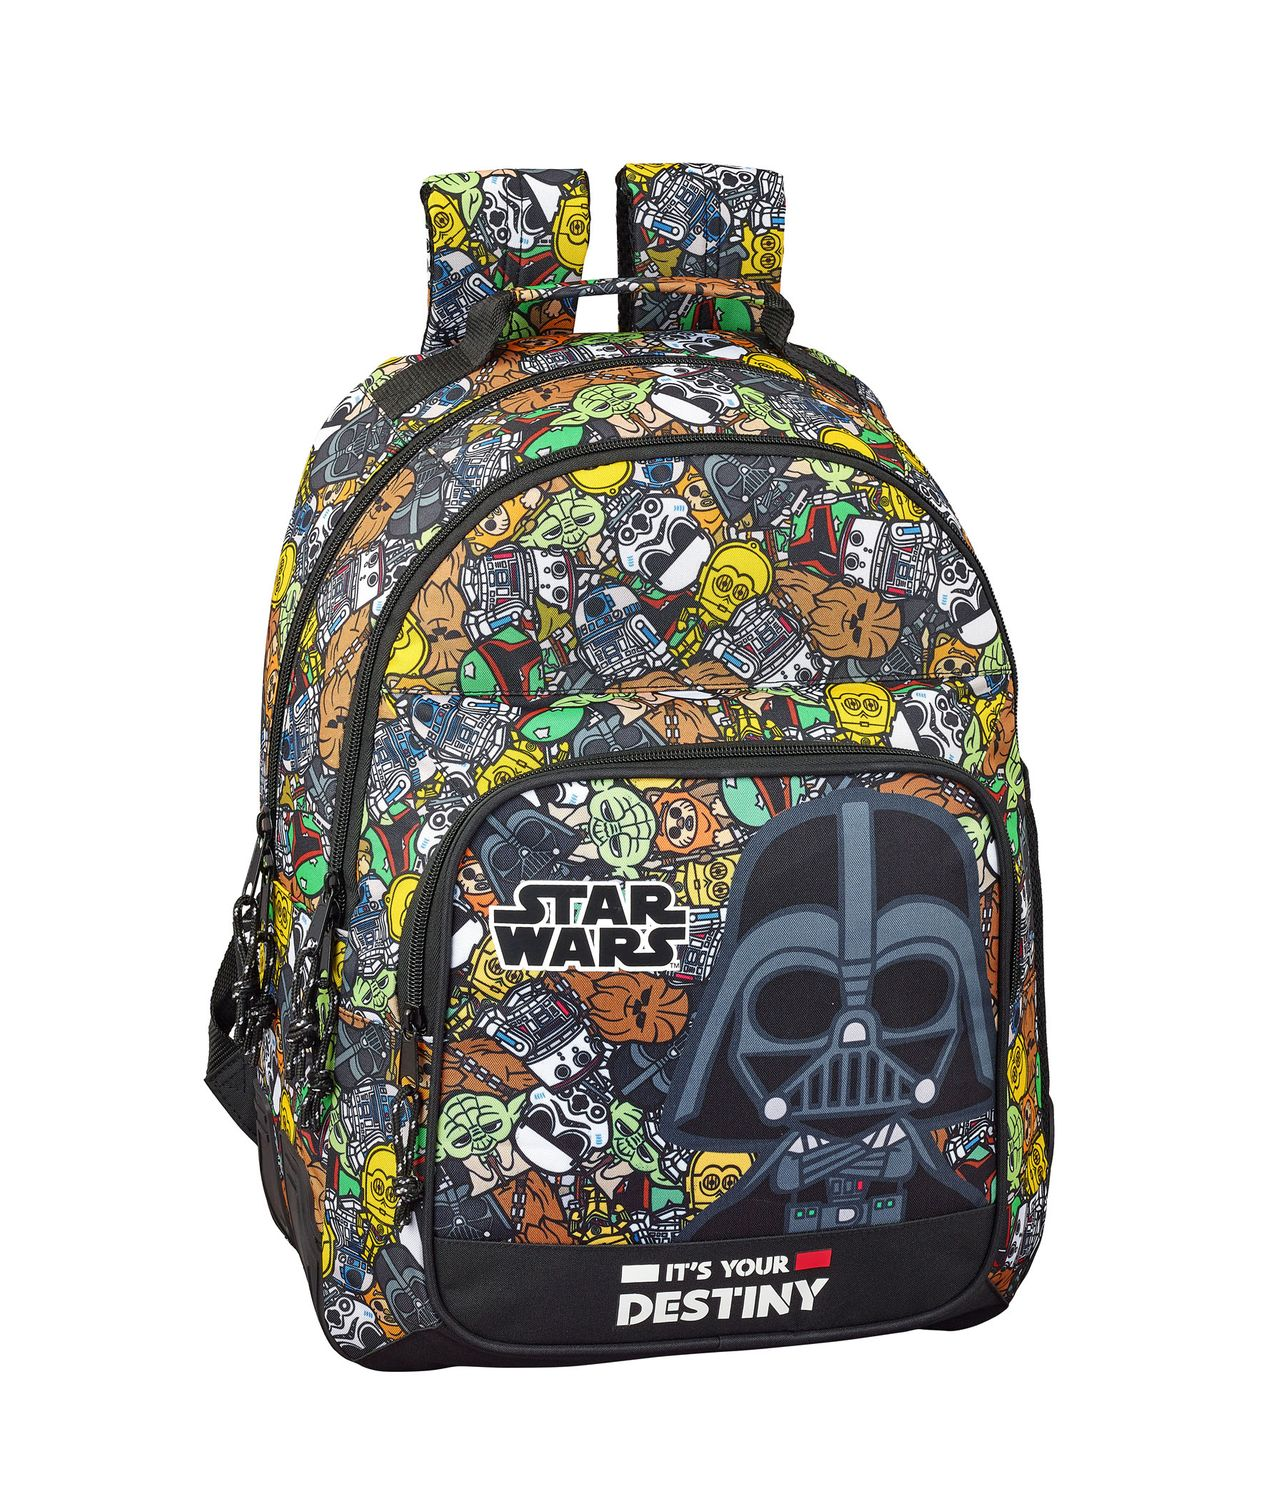 Premium Double Backpack 42 cm Star Wars GALAXY – image 1